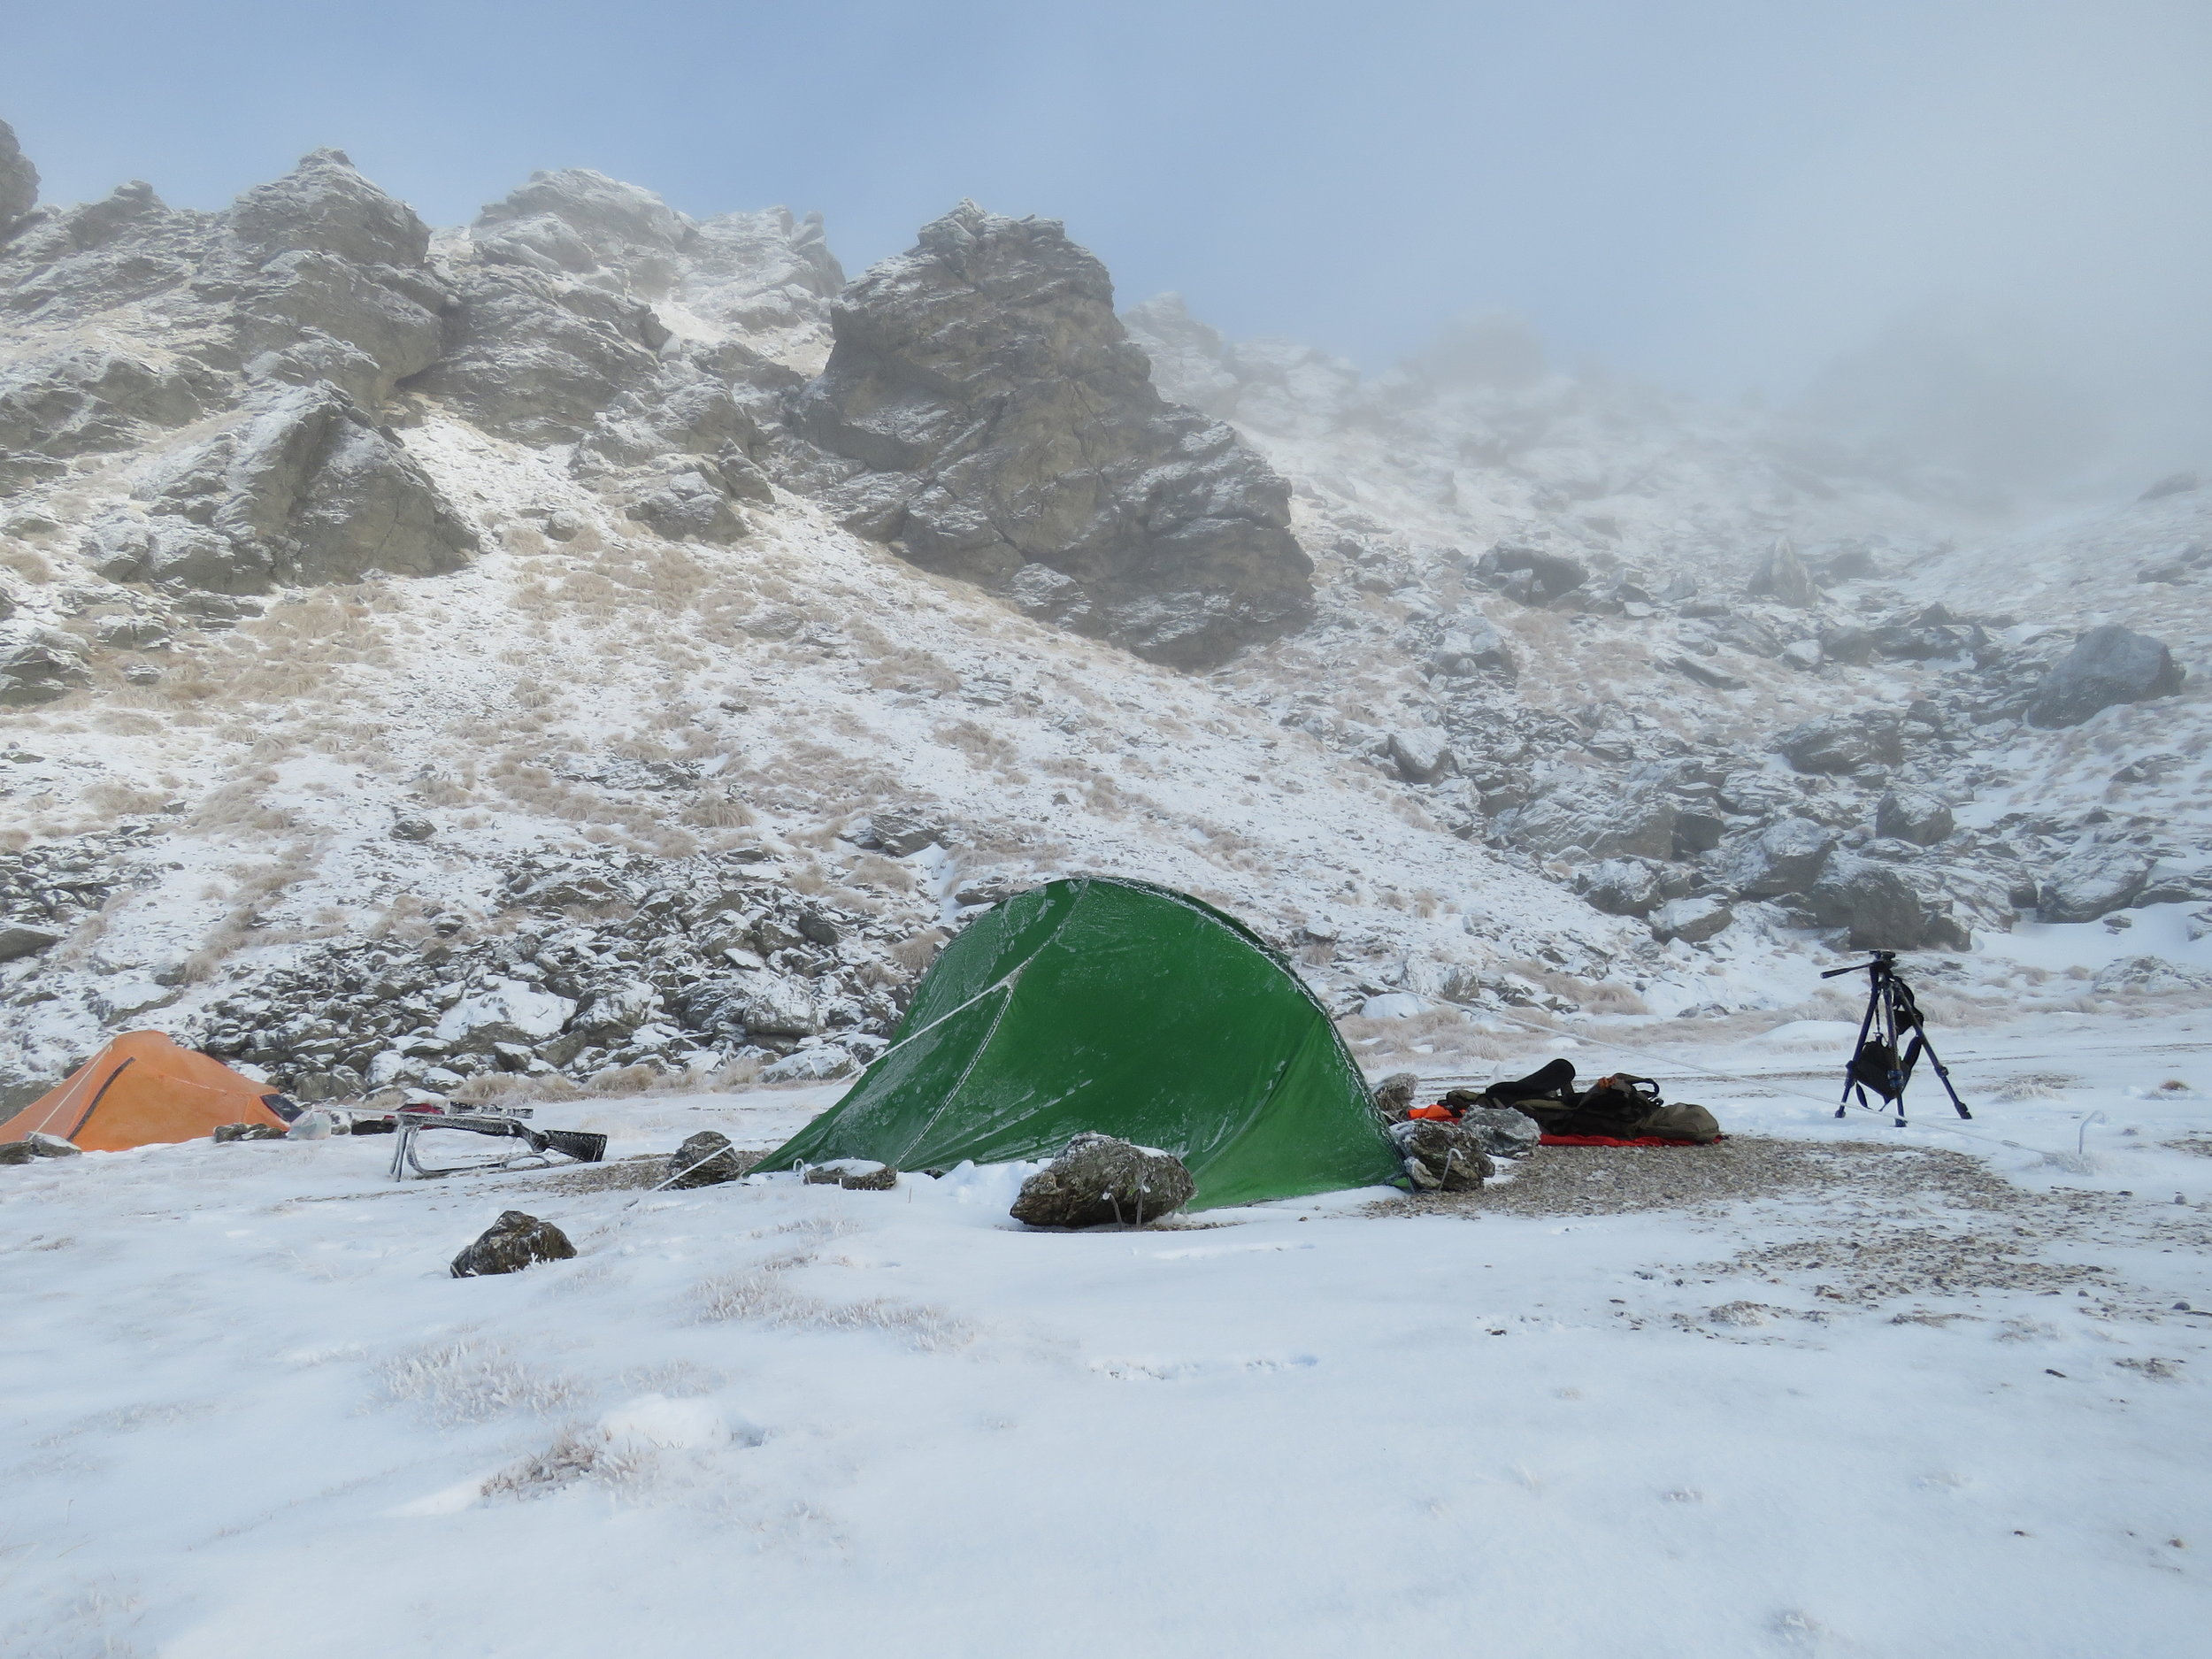 frozen camp in the mountains